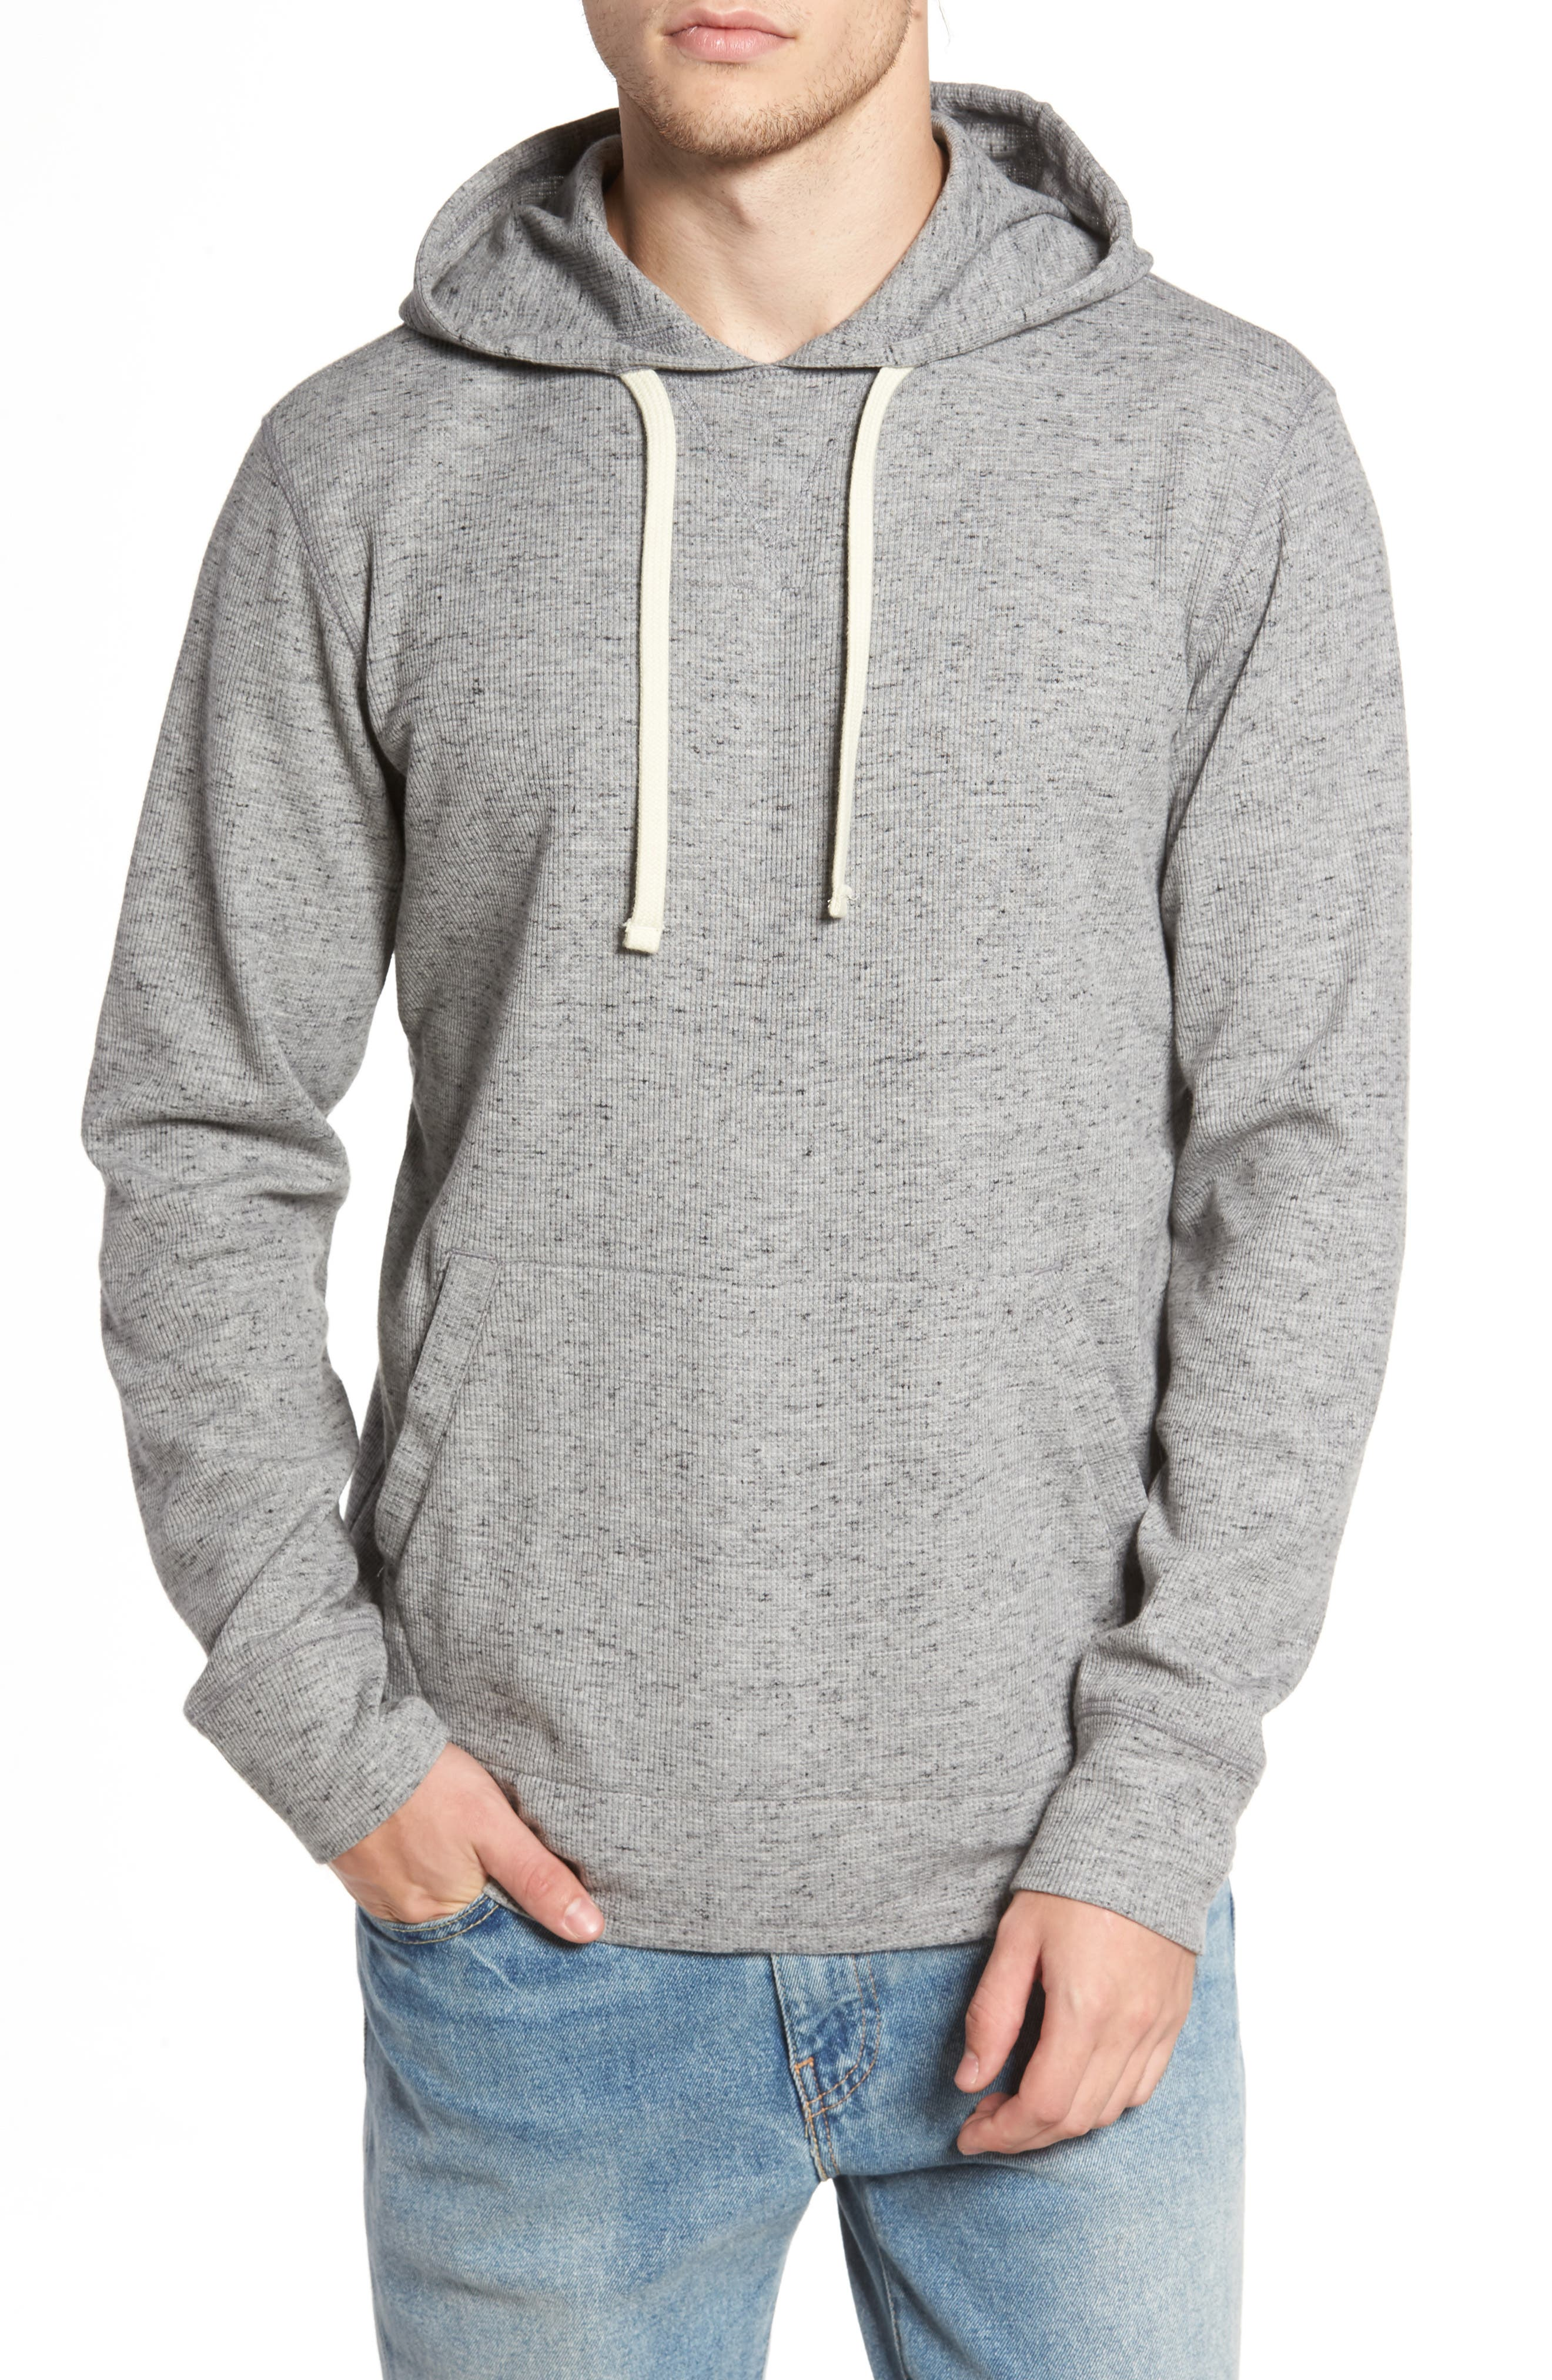 Boldin Thermal Pullover Hoodie,                         Main,                         color, Light Grey